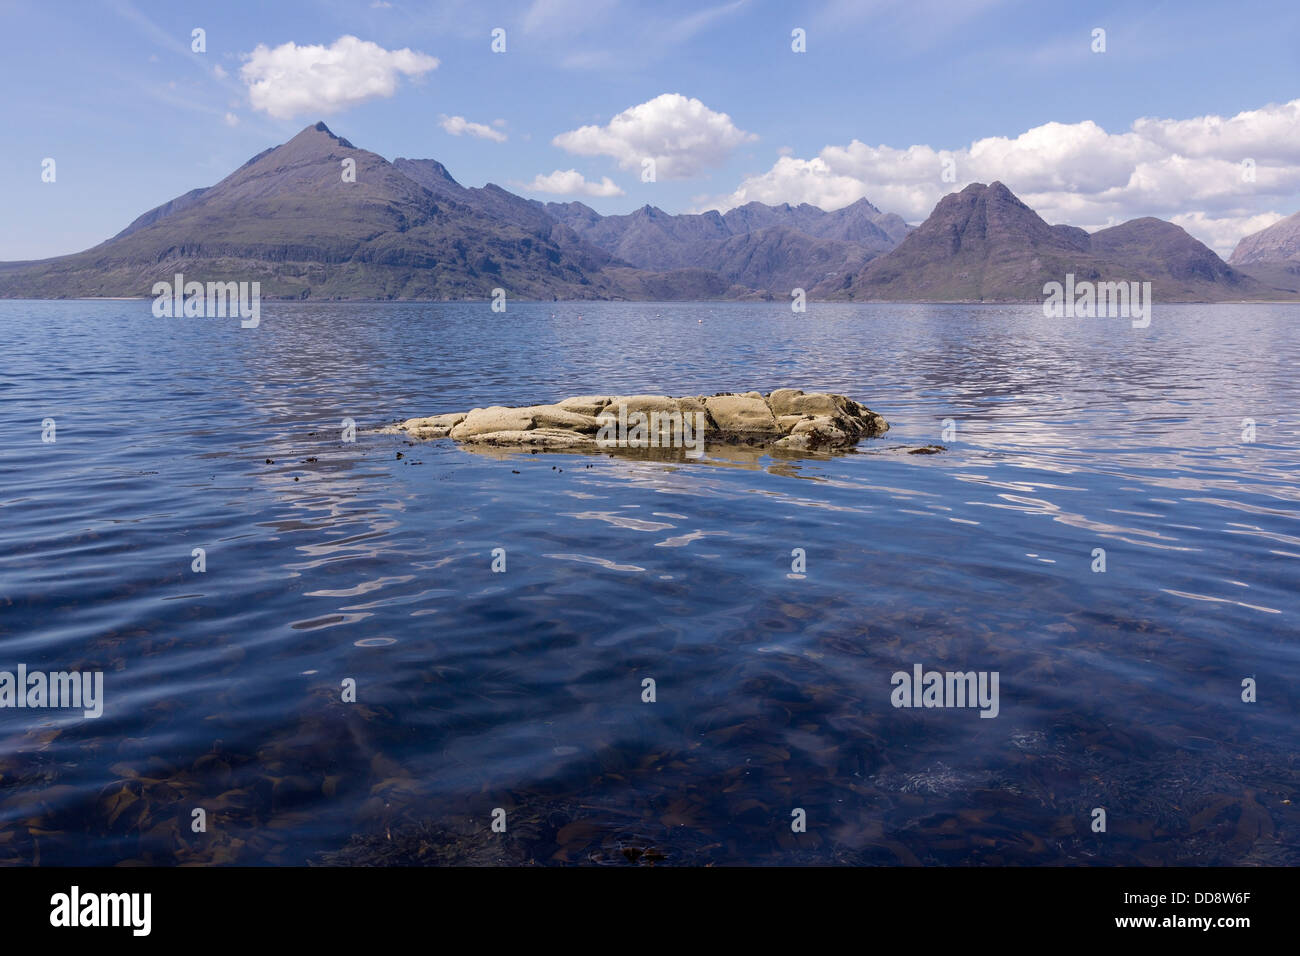 Black Cuillin Mountains and Loch Scavaig as seen from Elgol, Isle of Skye, Scotland, UK - Stock Image